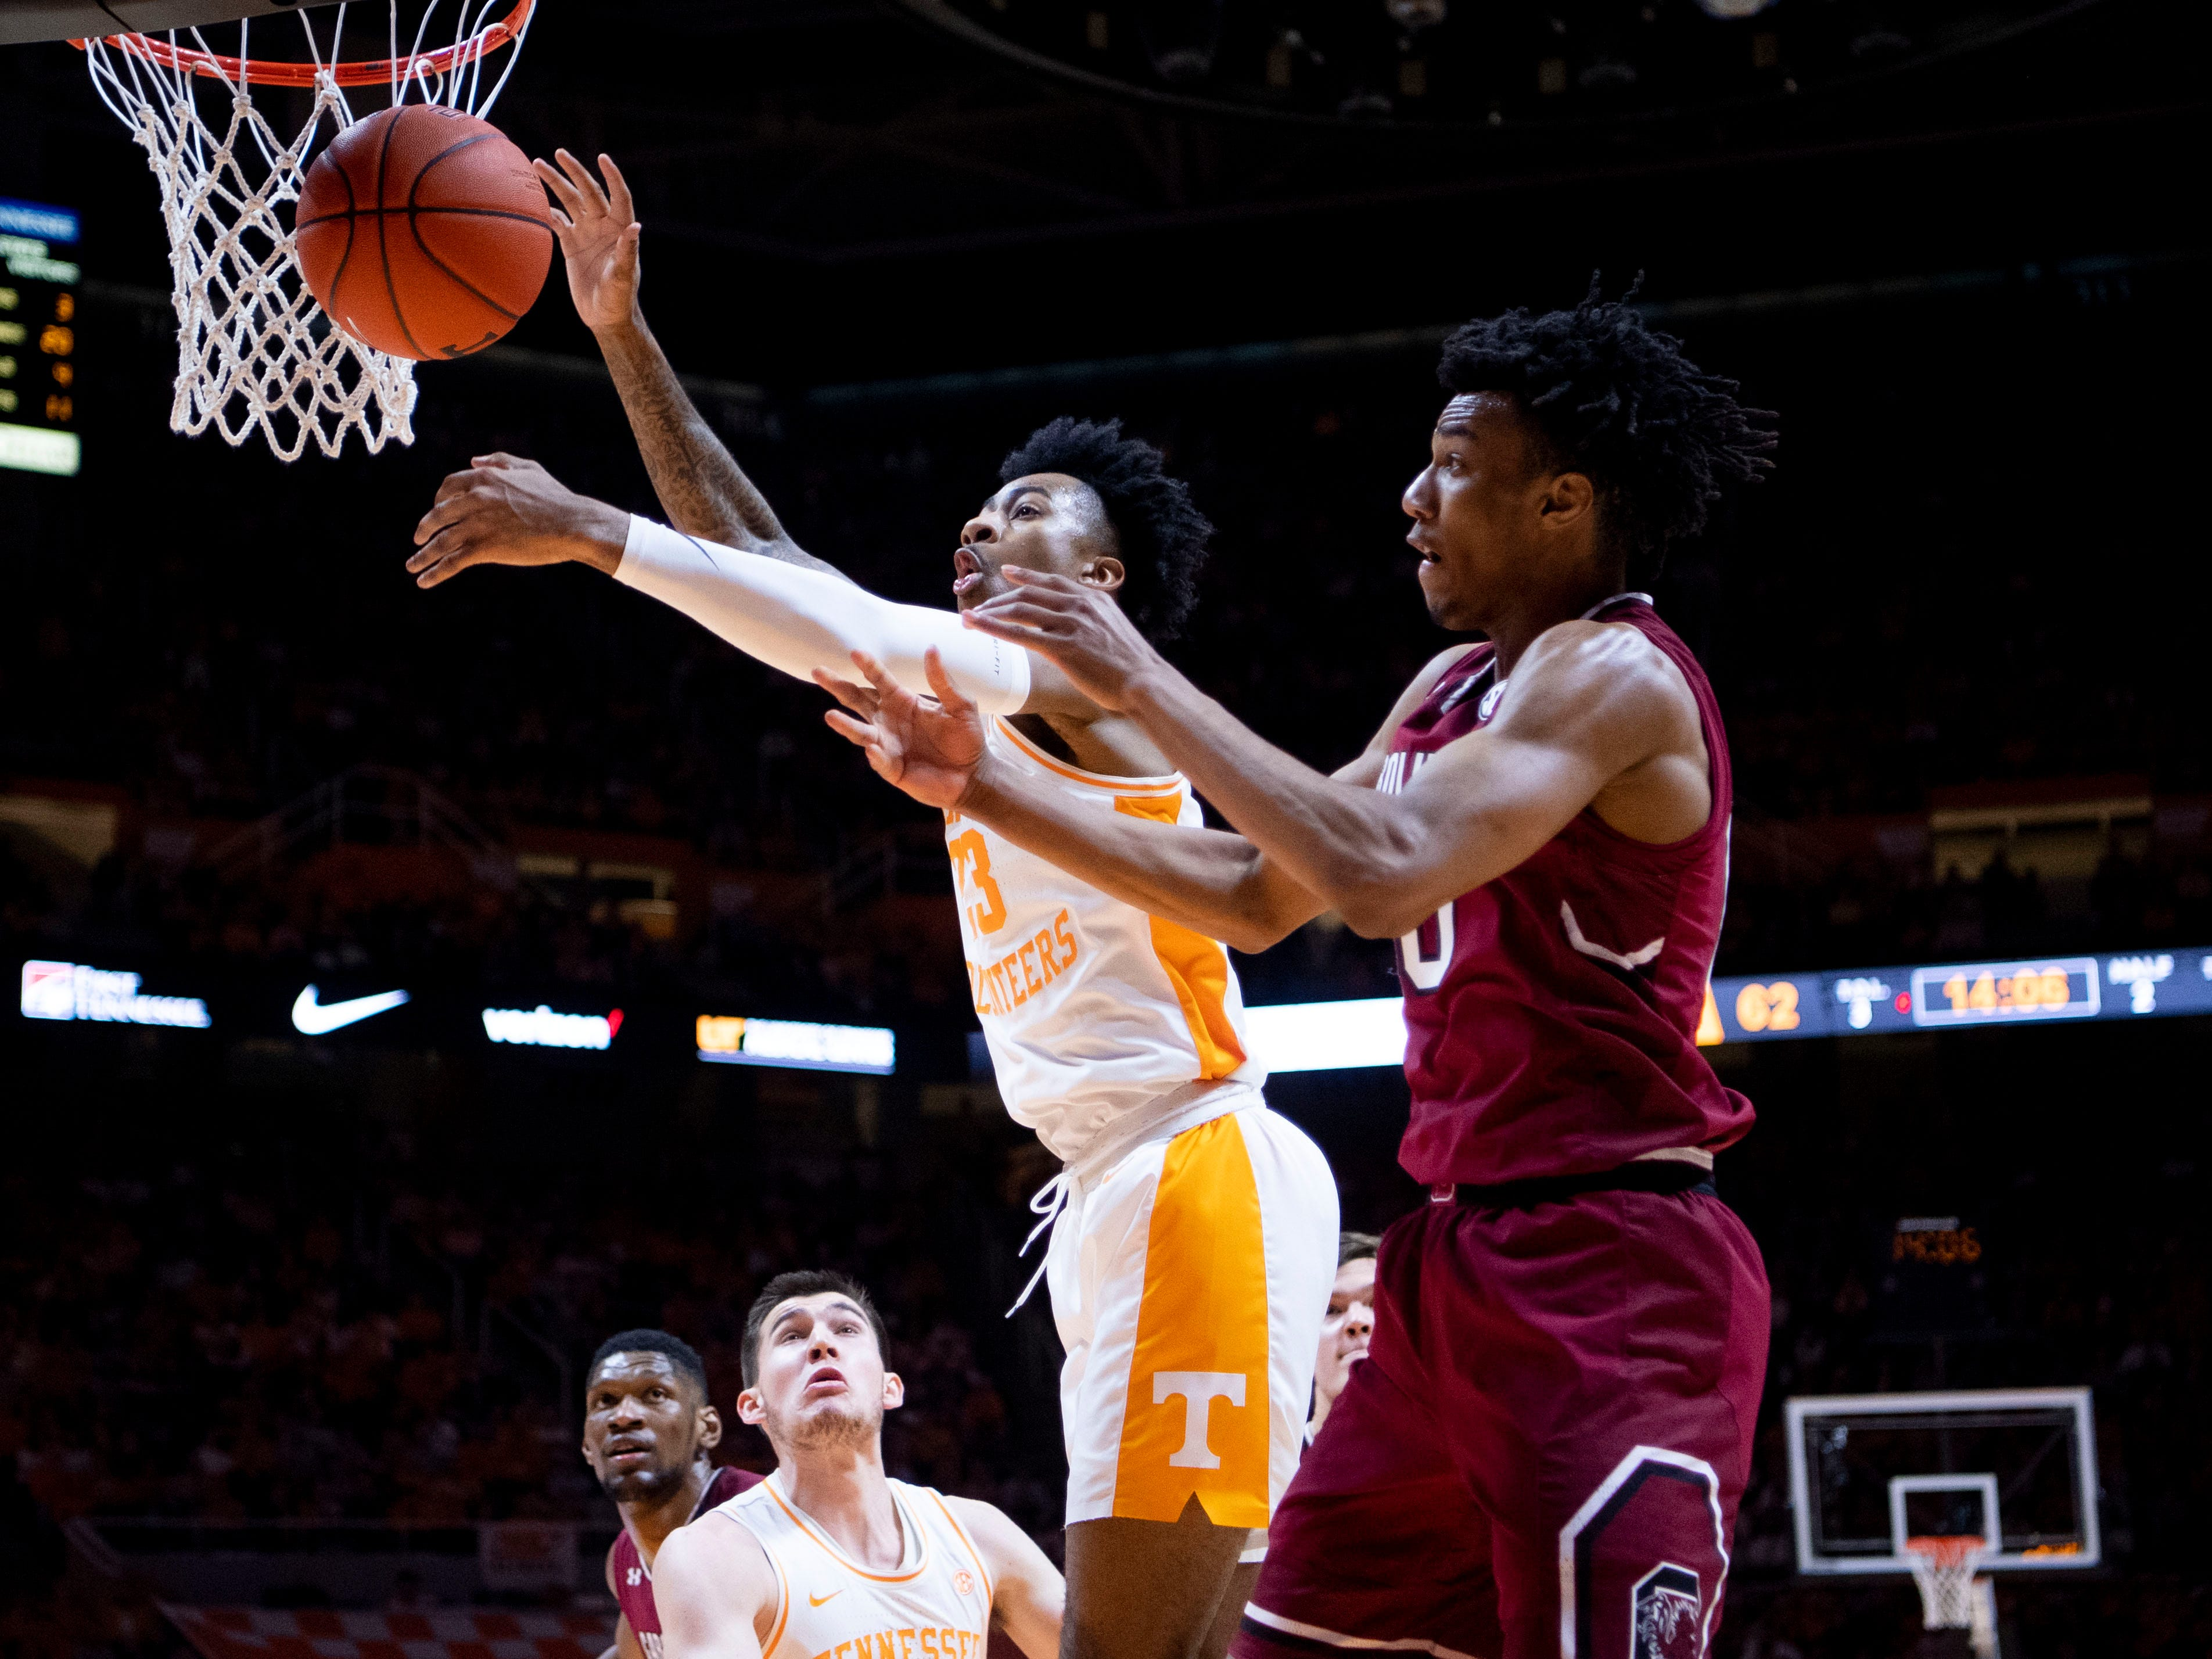 Tennessee's Jordan Bowden (23) gets the rebound over South Carolina guard A.J. Lawson (0) on Wednesday, February 13, 2019.